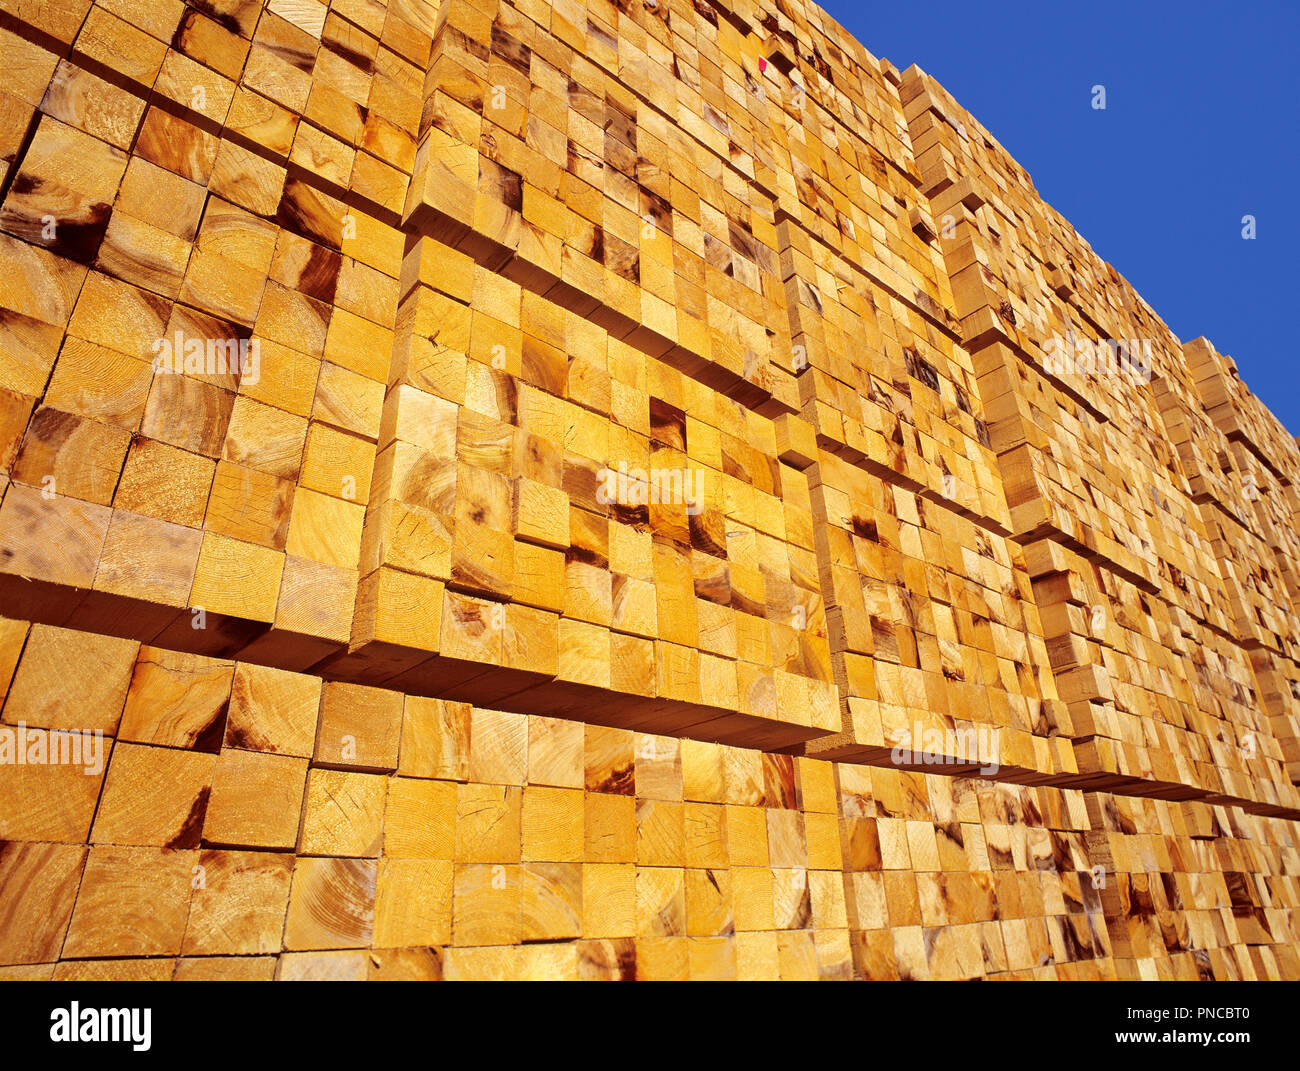 lumber stacked ready for export, North America, Canada, British Columbia, Vancouver Island, Nanaimo - Stock Image